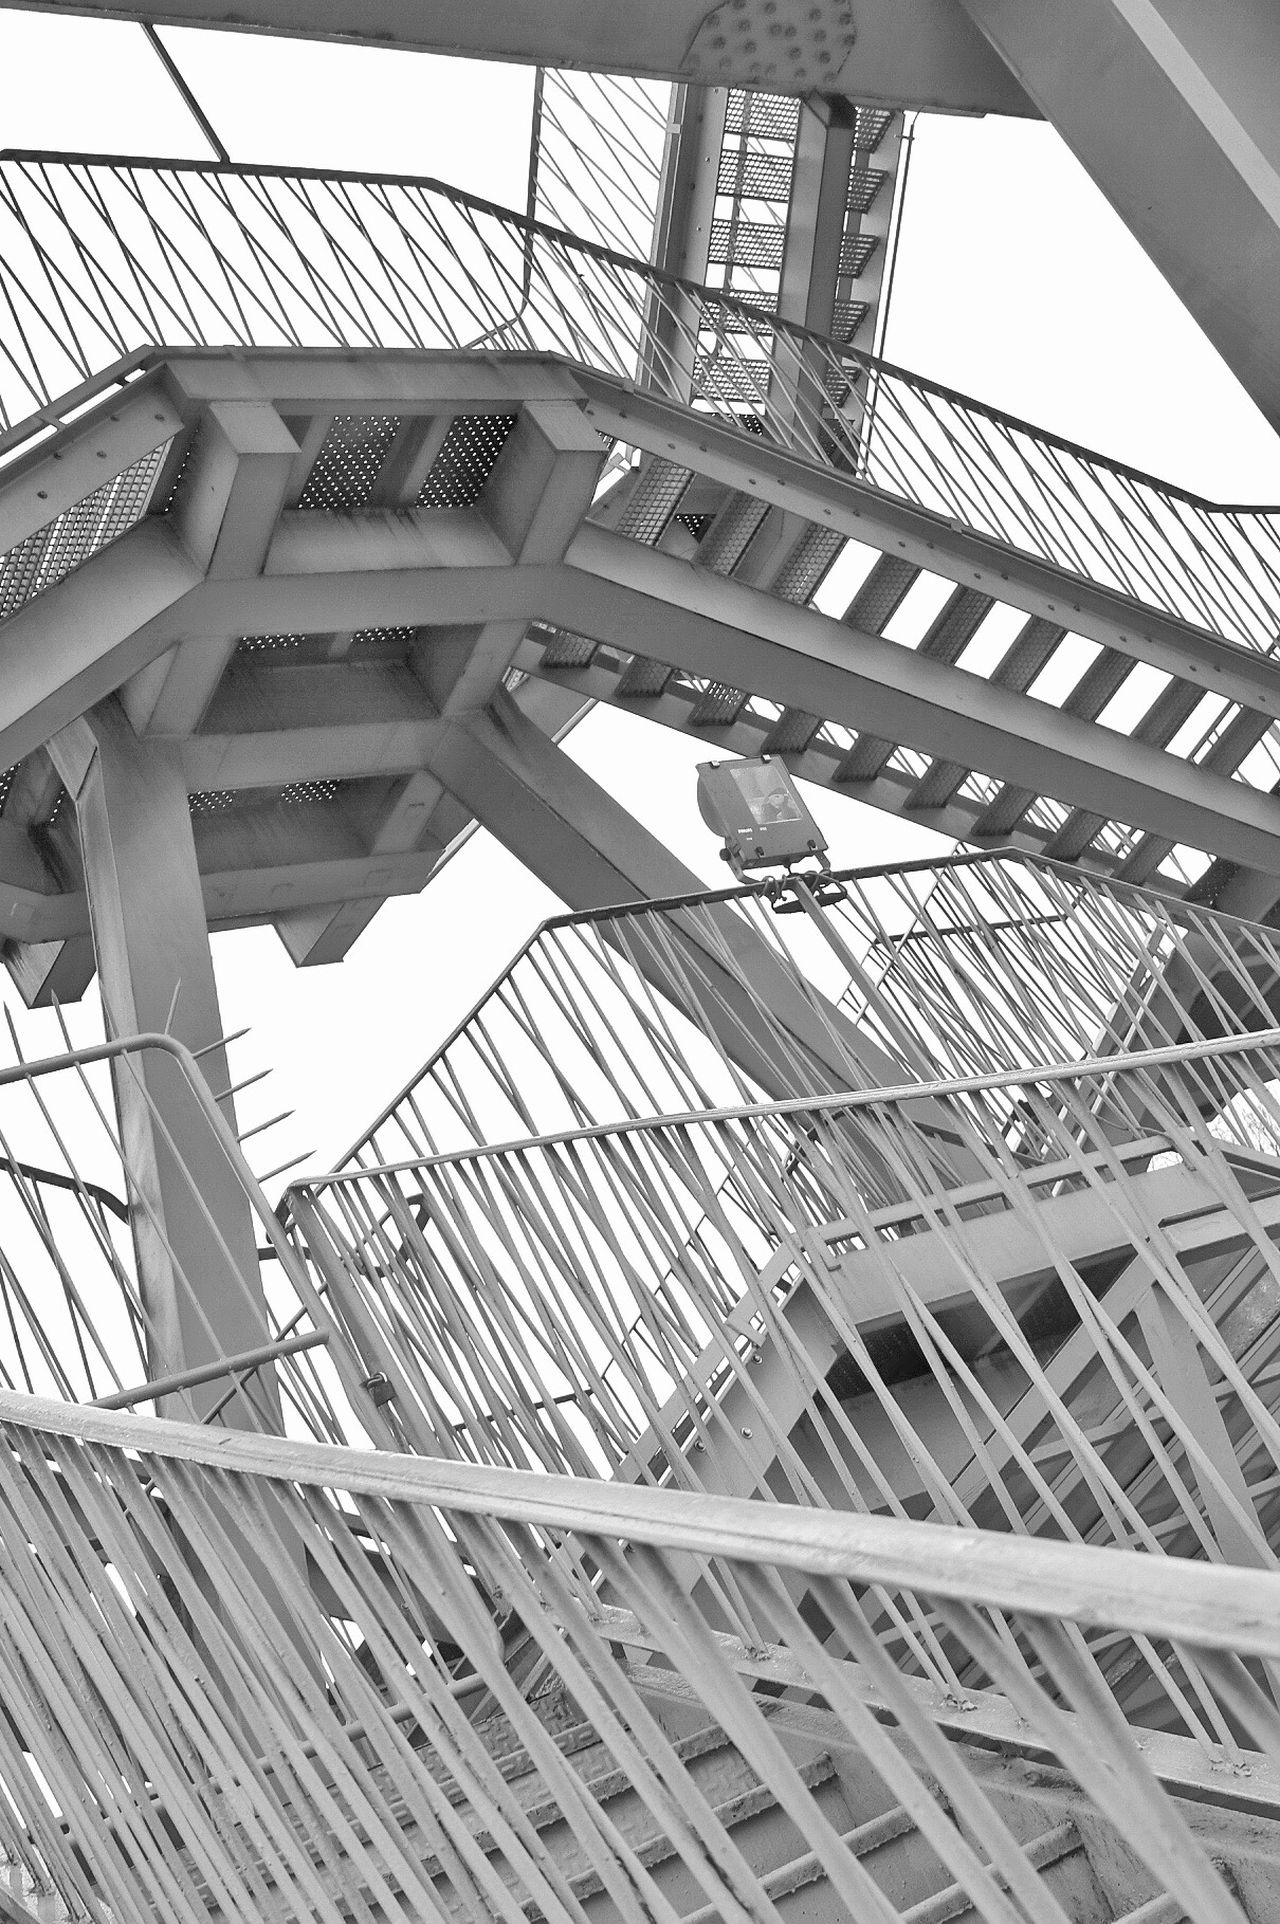 Architecture Low Angle View Built Structure Architecture Photography Staircase Stairways Stairs_collection Stairway To Heaven Stairway Mesh Mesh, Nets, Collection, Material, Textile, Fabric, Steel Structure